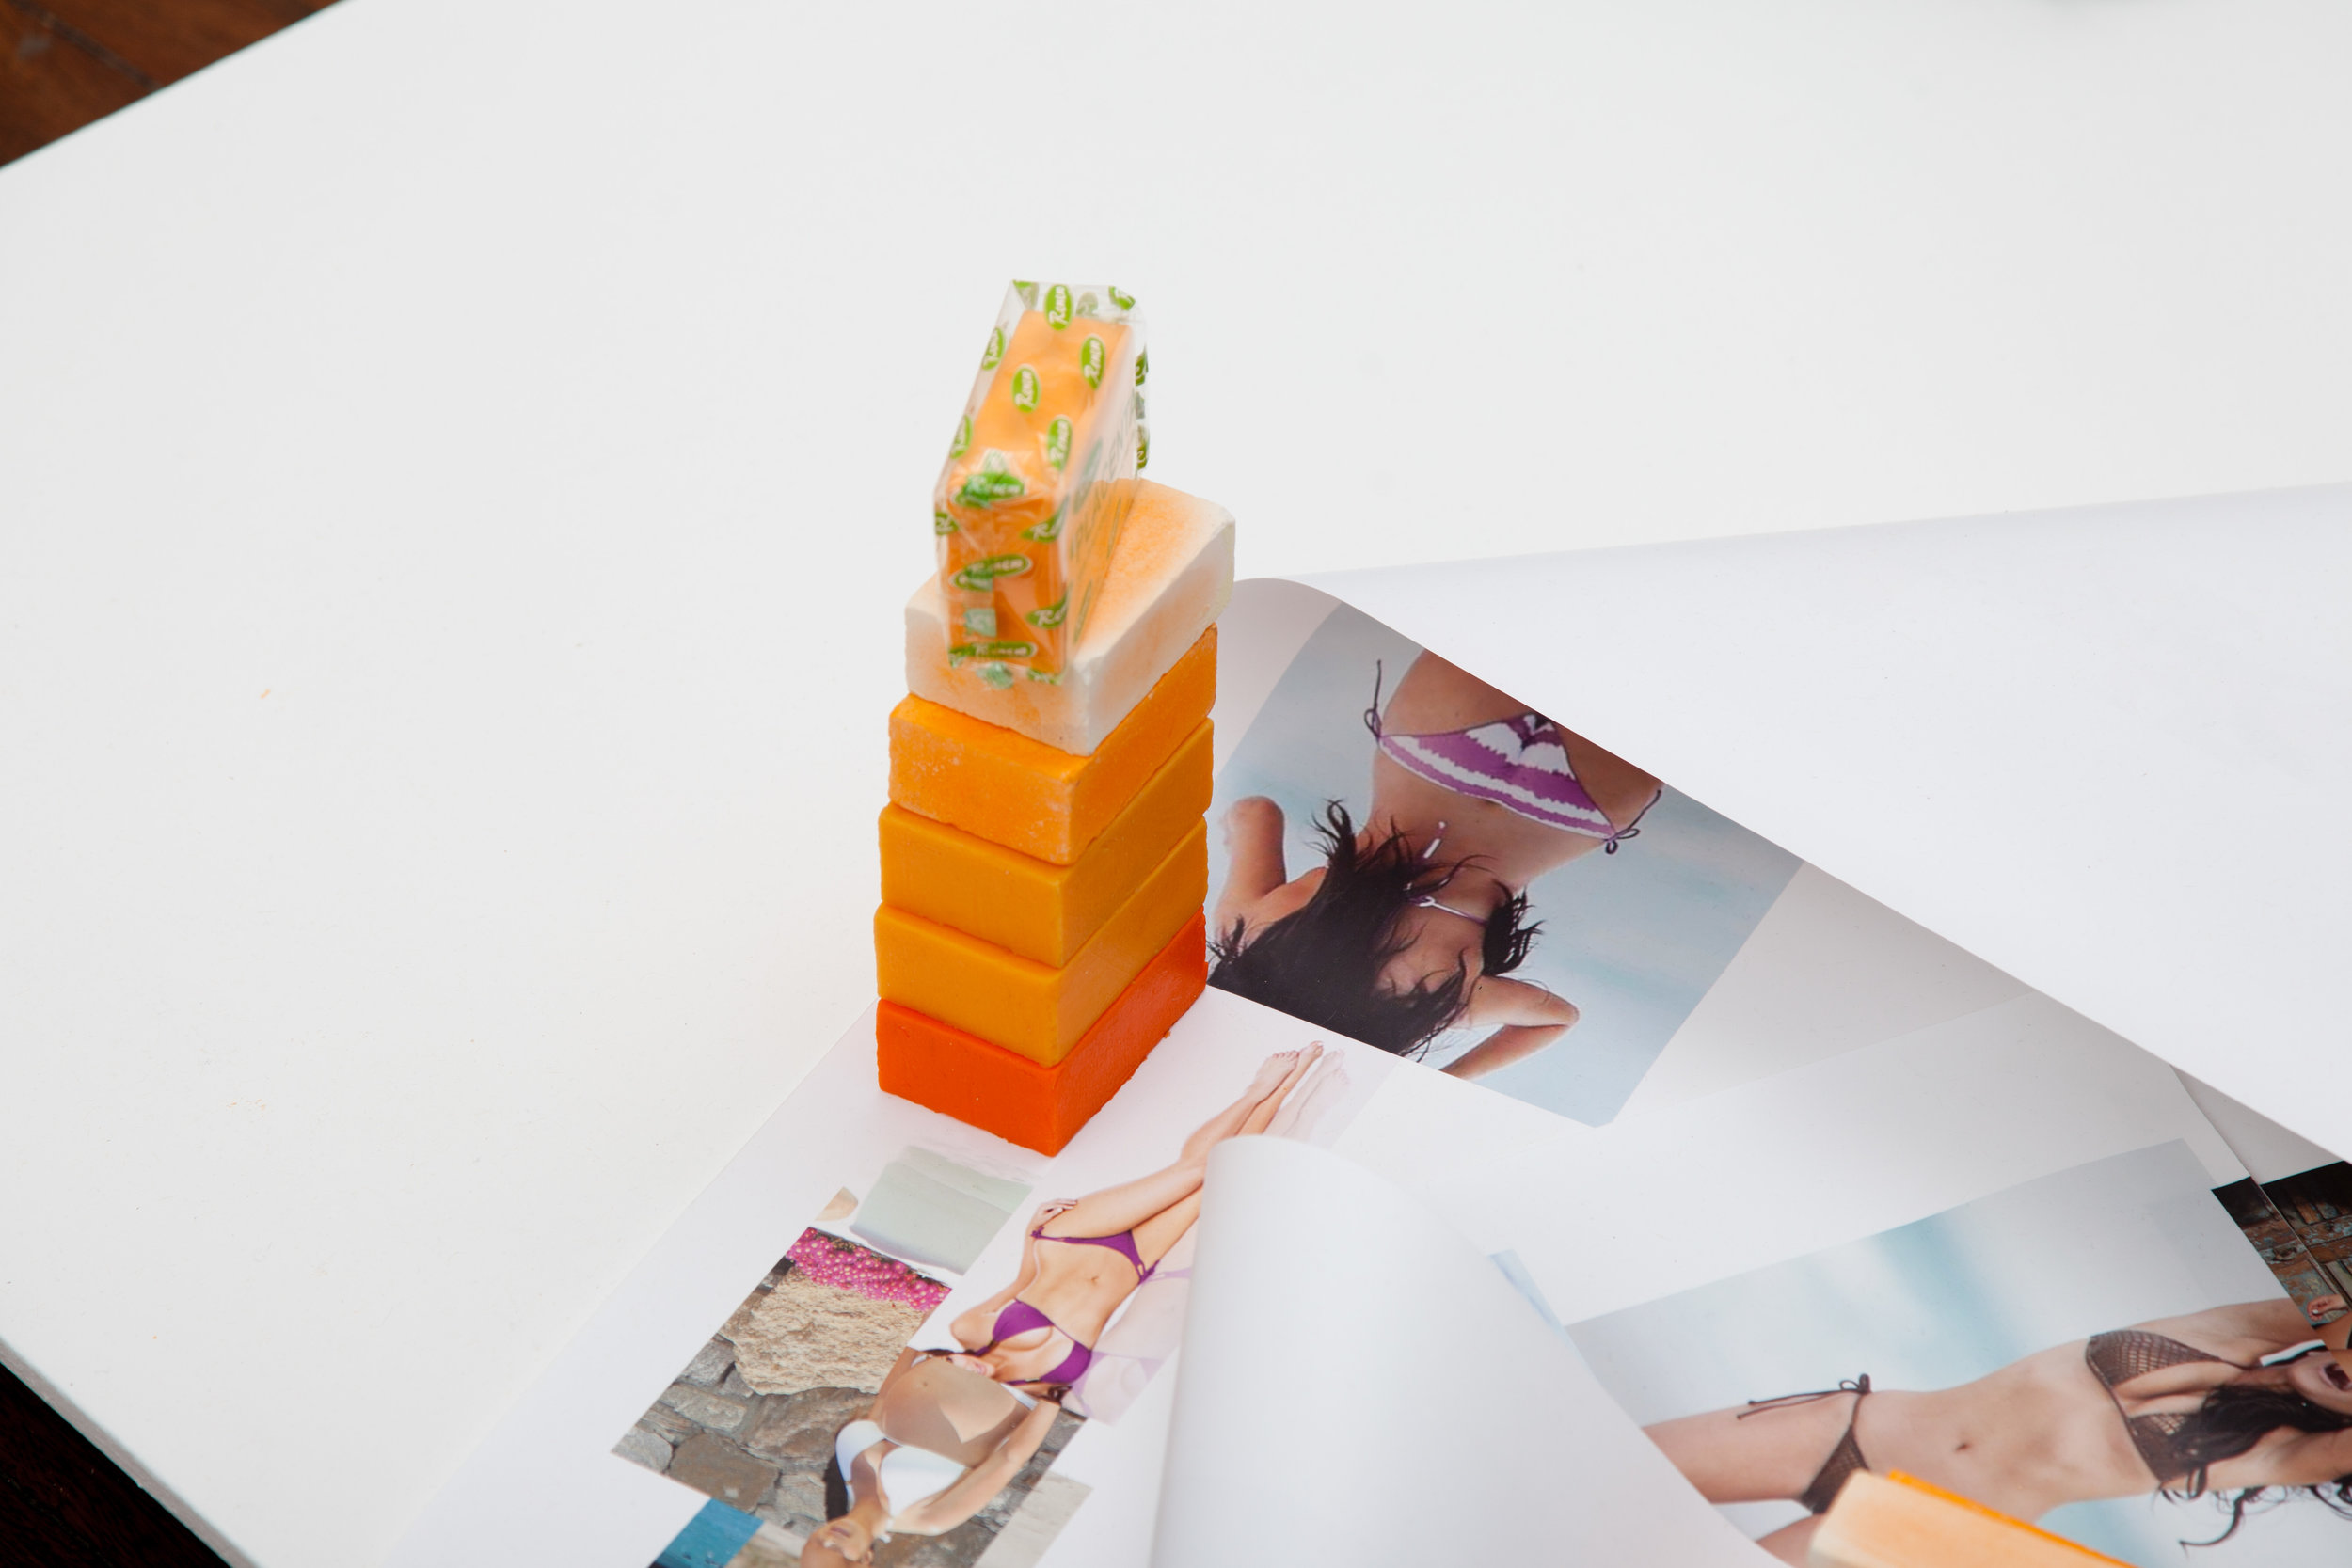 Sunset , 2012, polyurethane expanding foam, pigmented silicone, skin-whitening soap; and  Body for days , 2013, found images of Kim Kardashian, repurposed Barbara Kruger text, installation view, Life & Style , 2015, Kudos Gallery, Sydney. Photography: Brett East. Copyright JD Reforma